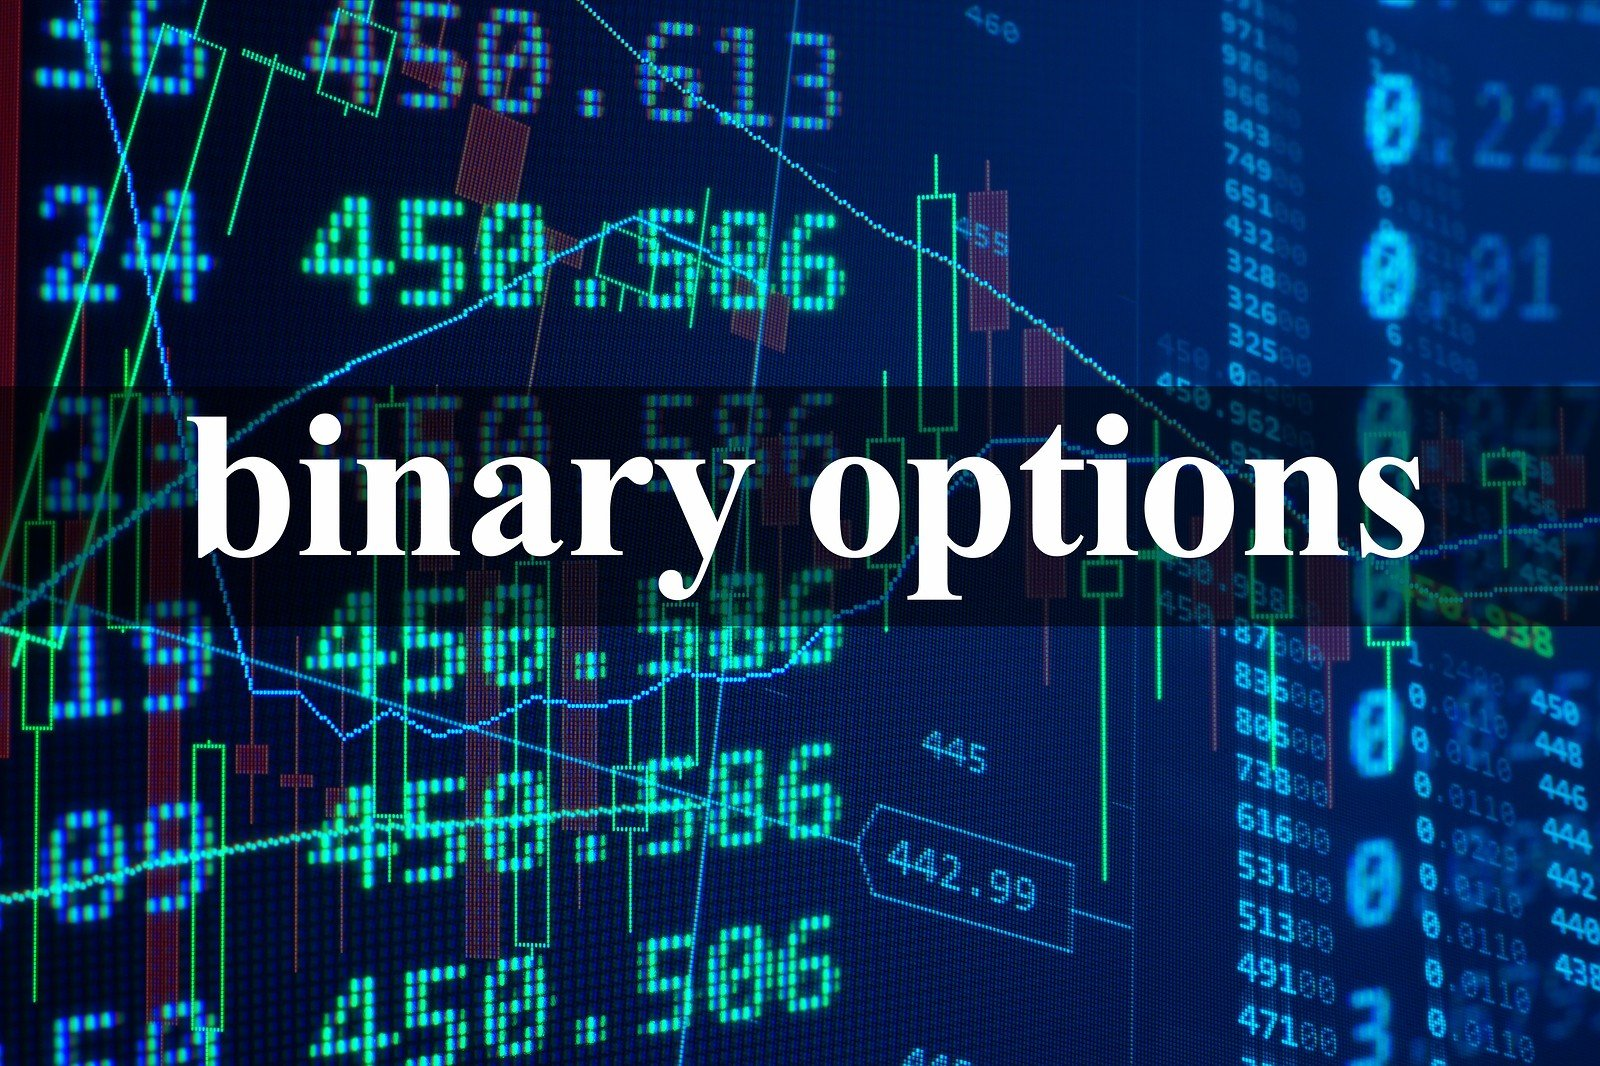 The binary options insider